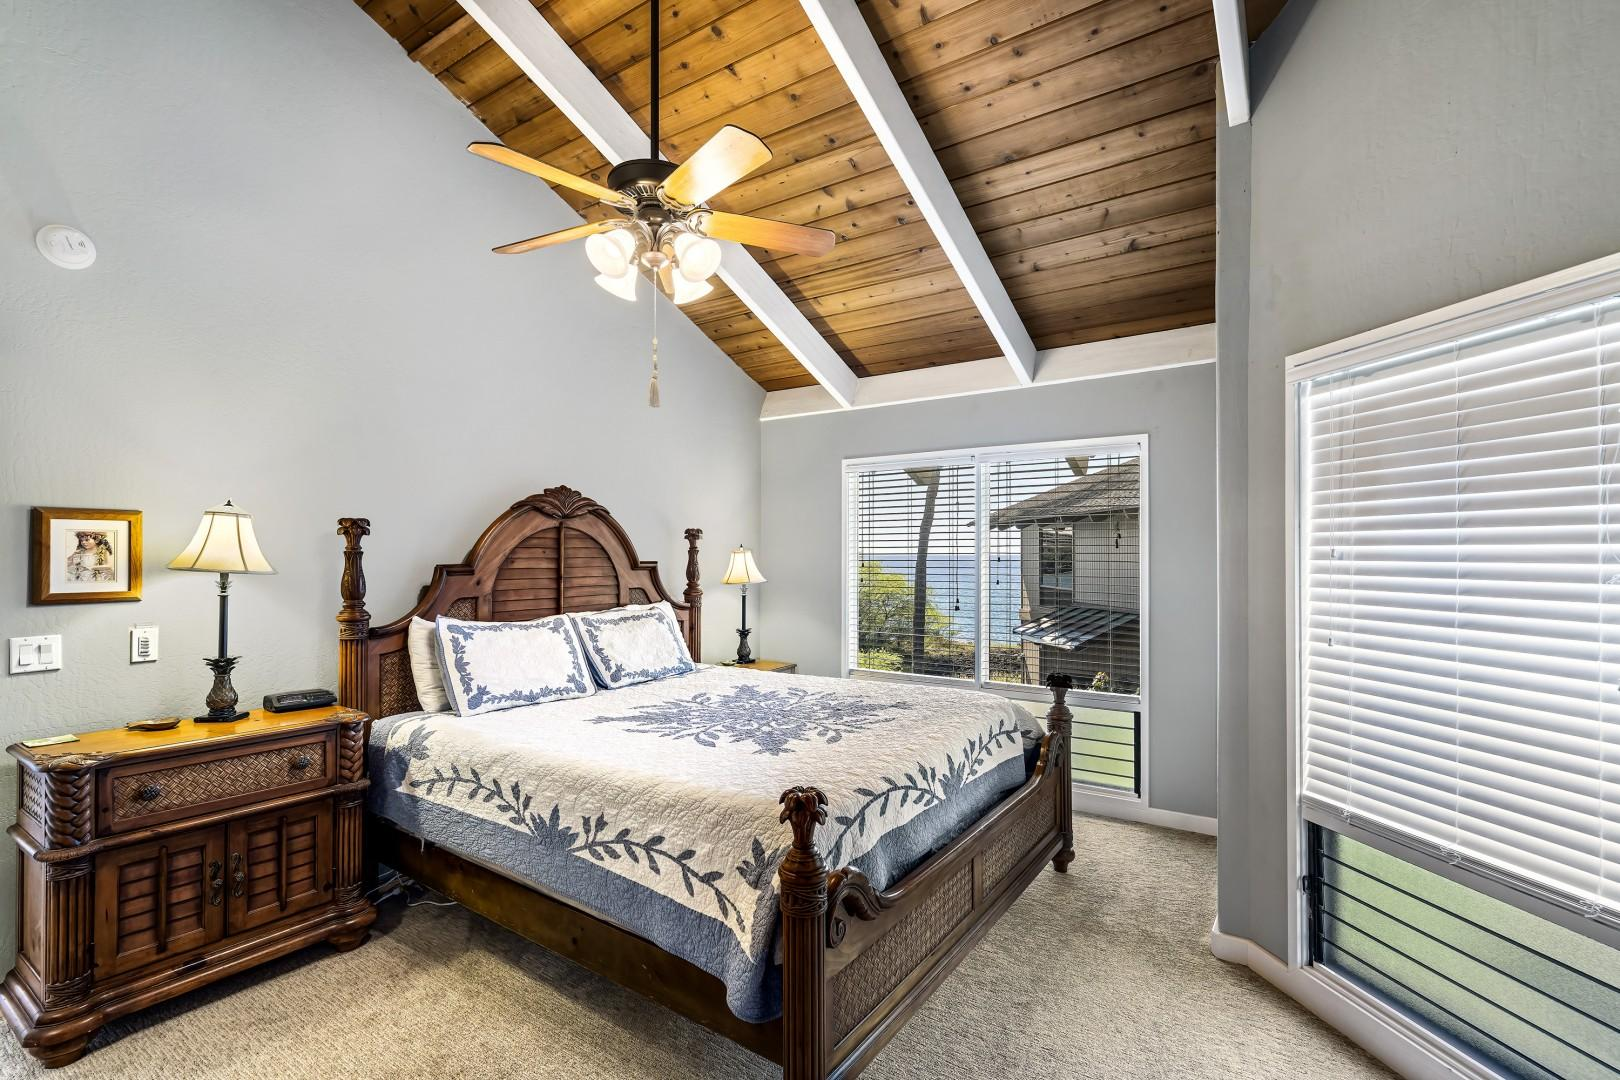 Master bedroom equipped with A/C, TV, Ocean views, and ensuite